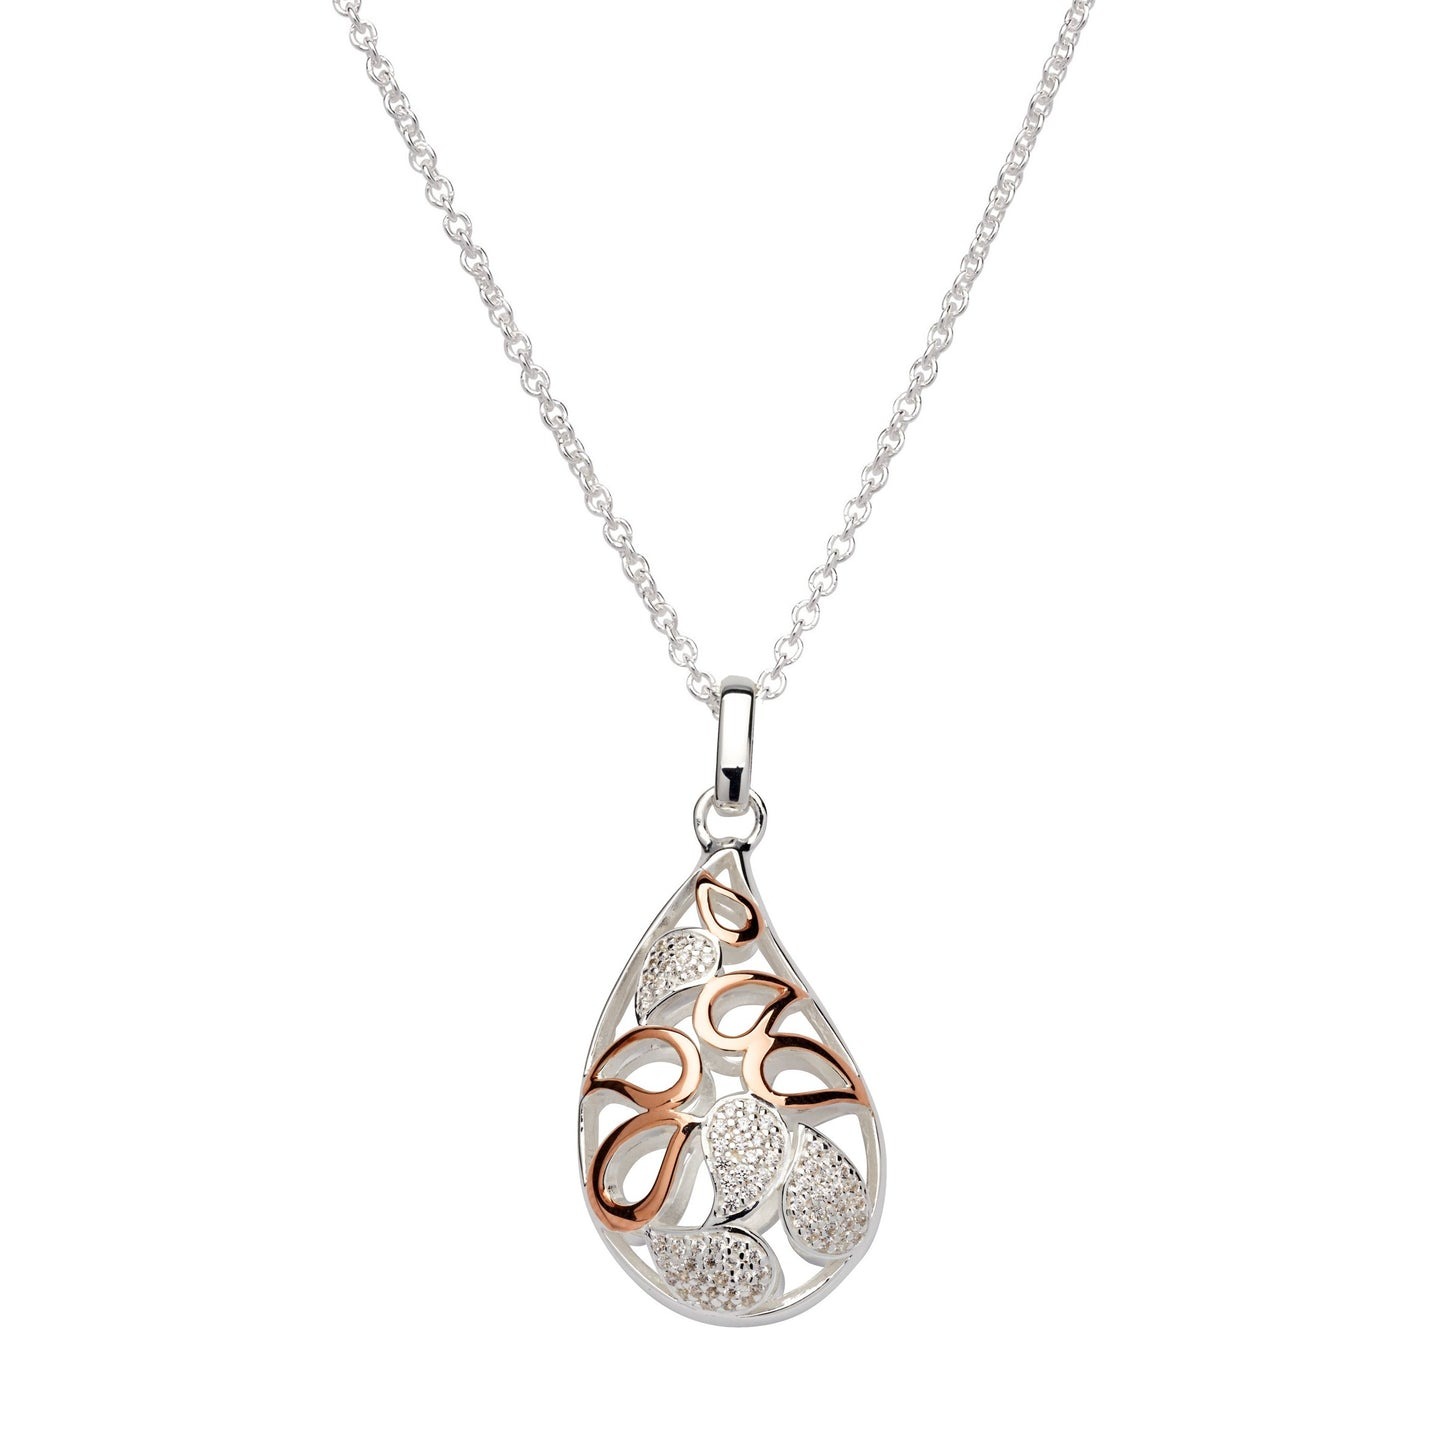 Silver and Rose Petal Shape Pendant with Chain MK-667